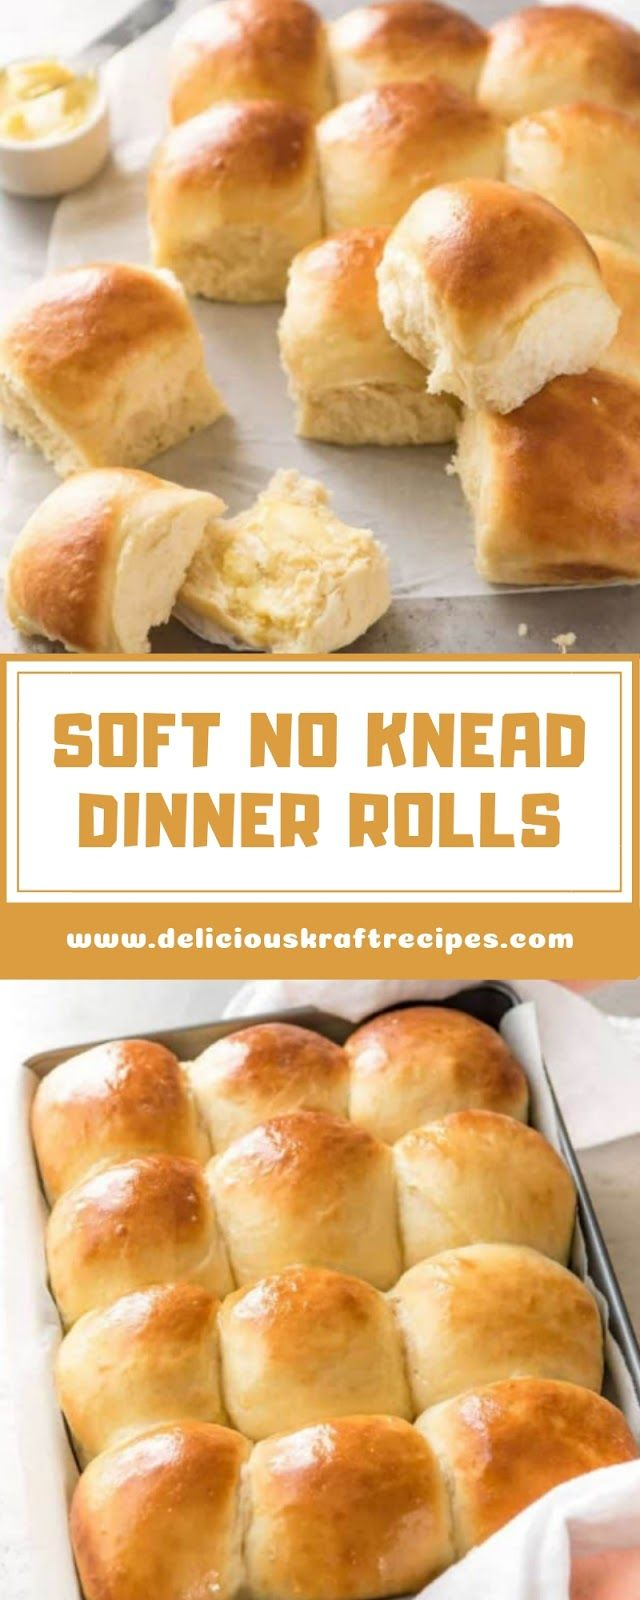 SOFT NO KNEAD DINNER ROLLS images